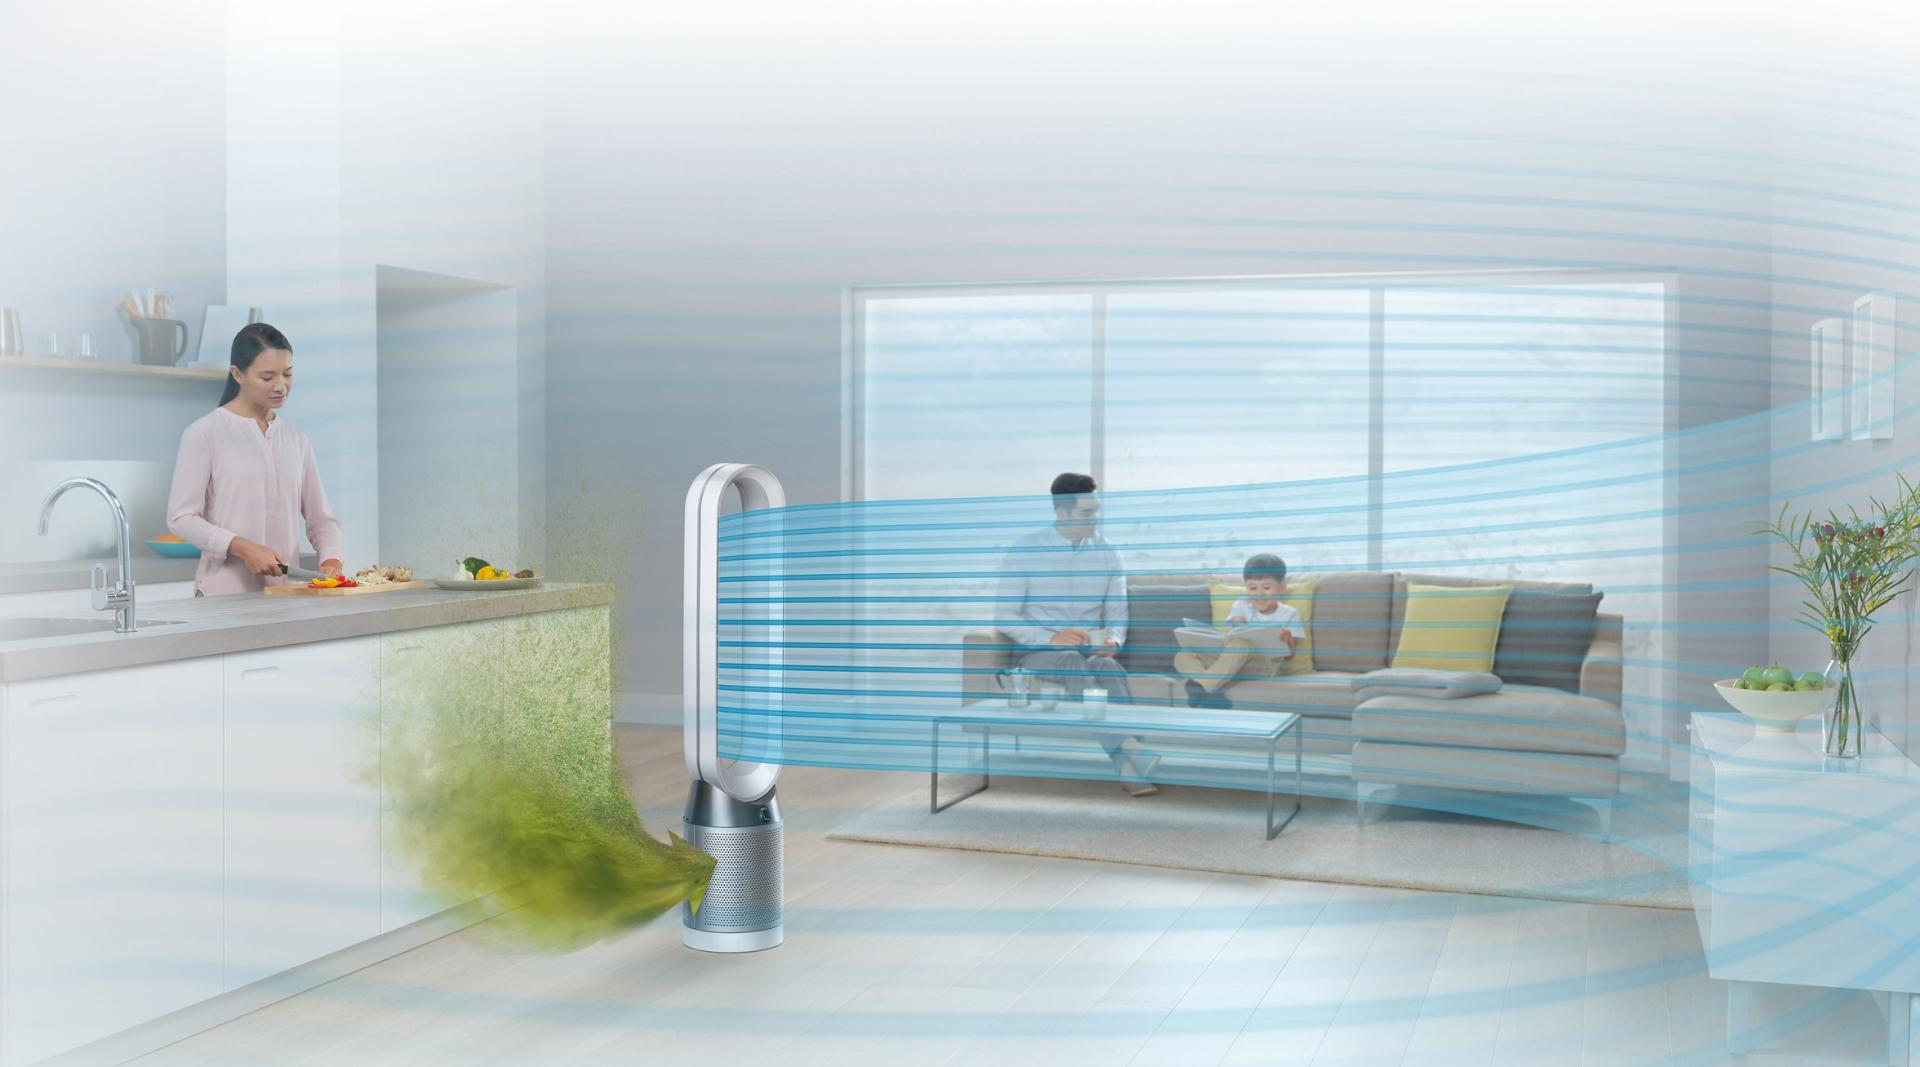 dyson pure cool purifies the whole room